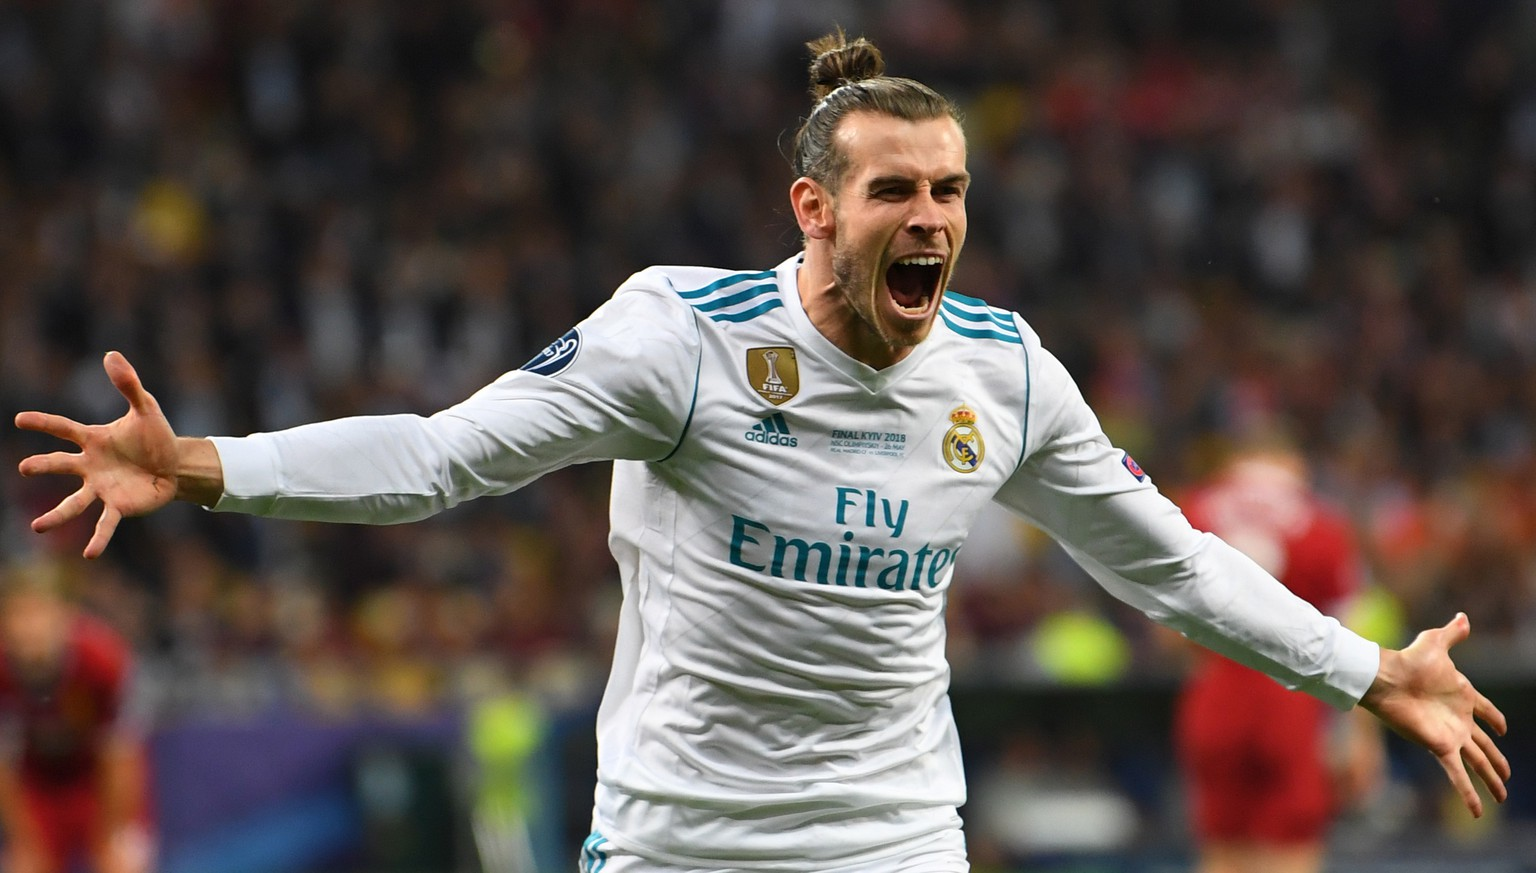 epaselect epa06765754 Real Madrid's Gareth Bale celebrates scoring the 2-1 lead during the UEFA Champions League final between Real Madrid and Liverpool FC at the NSC Olimpiyskiy stadium in Kiev, Ukraine, 26 May 2018.  EPA/GEORGI LICOVSKI